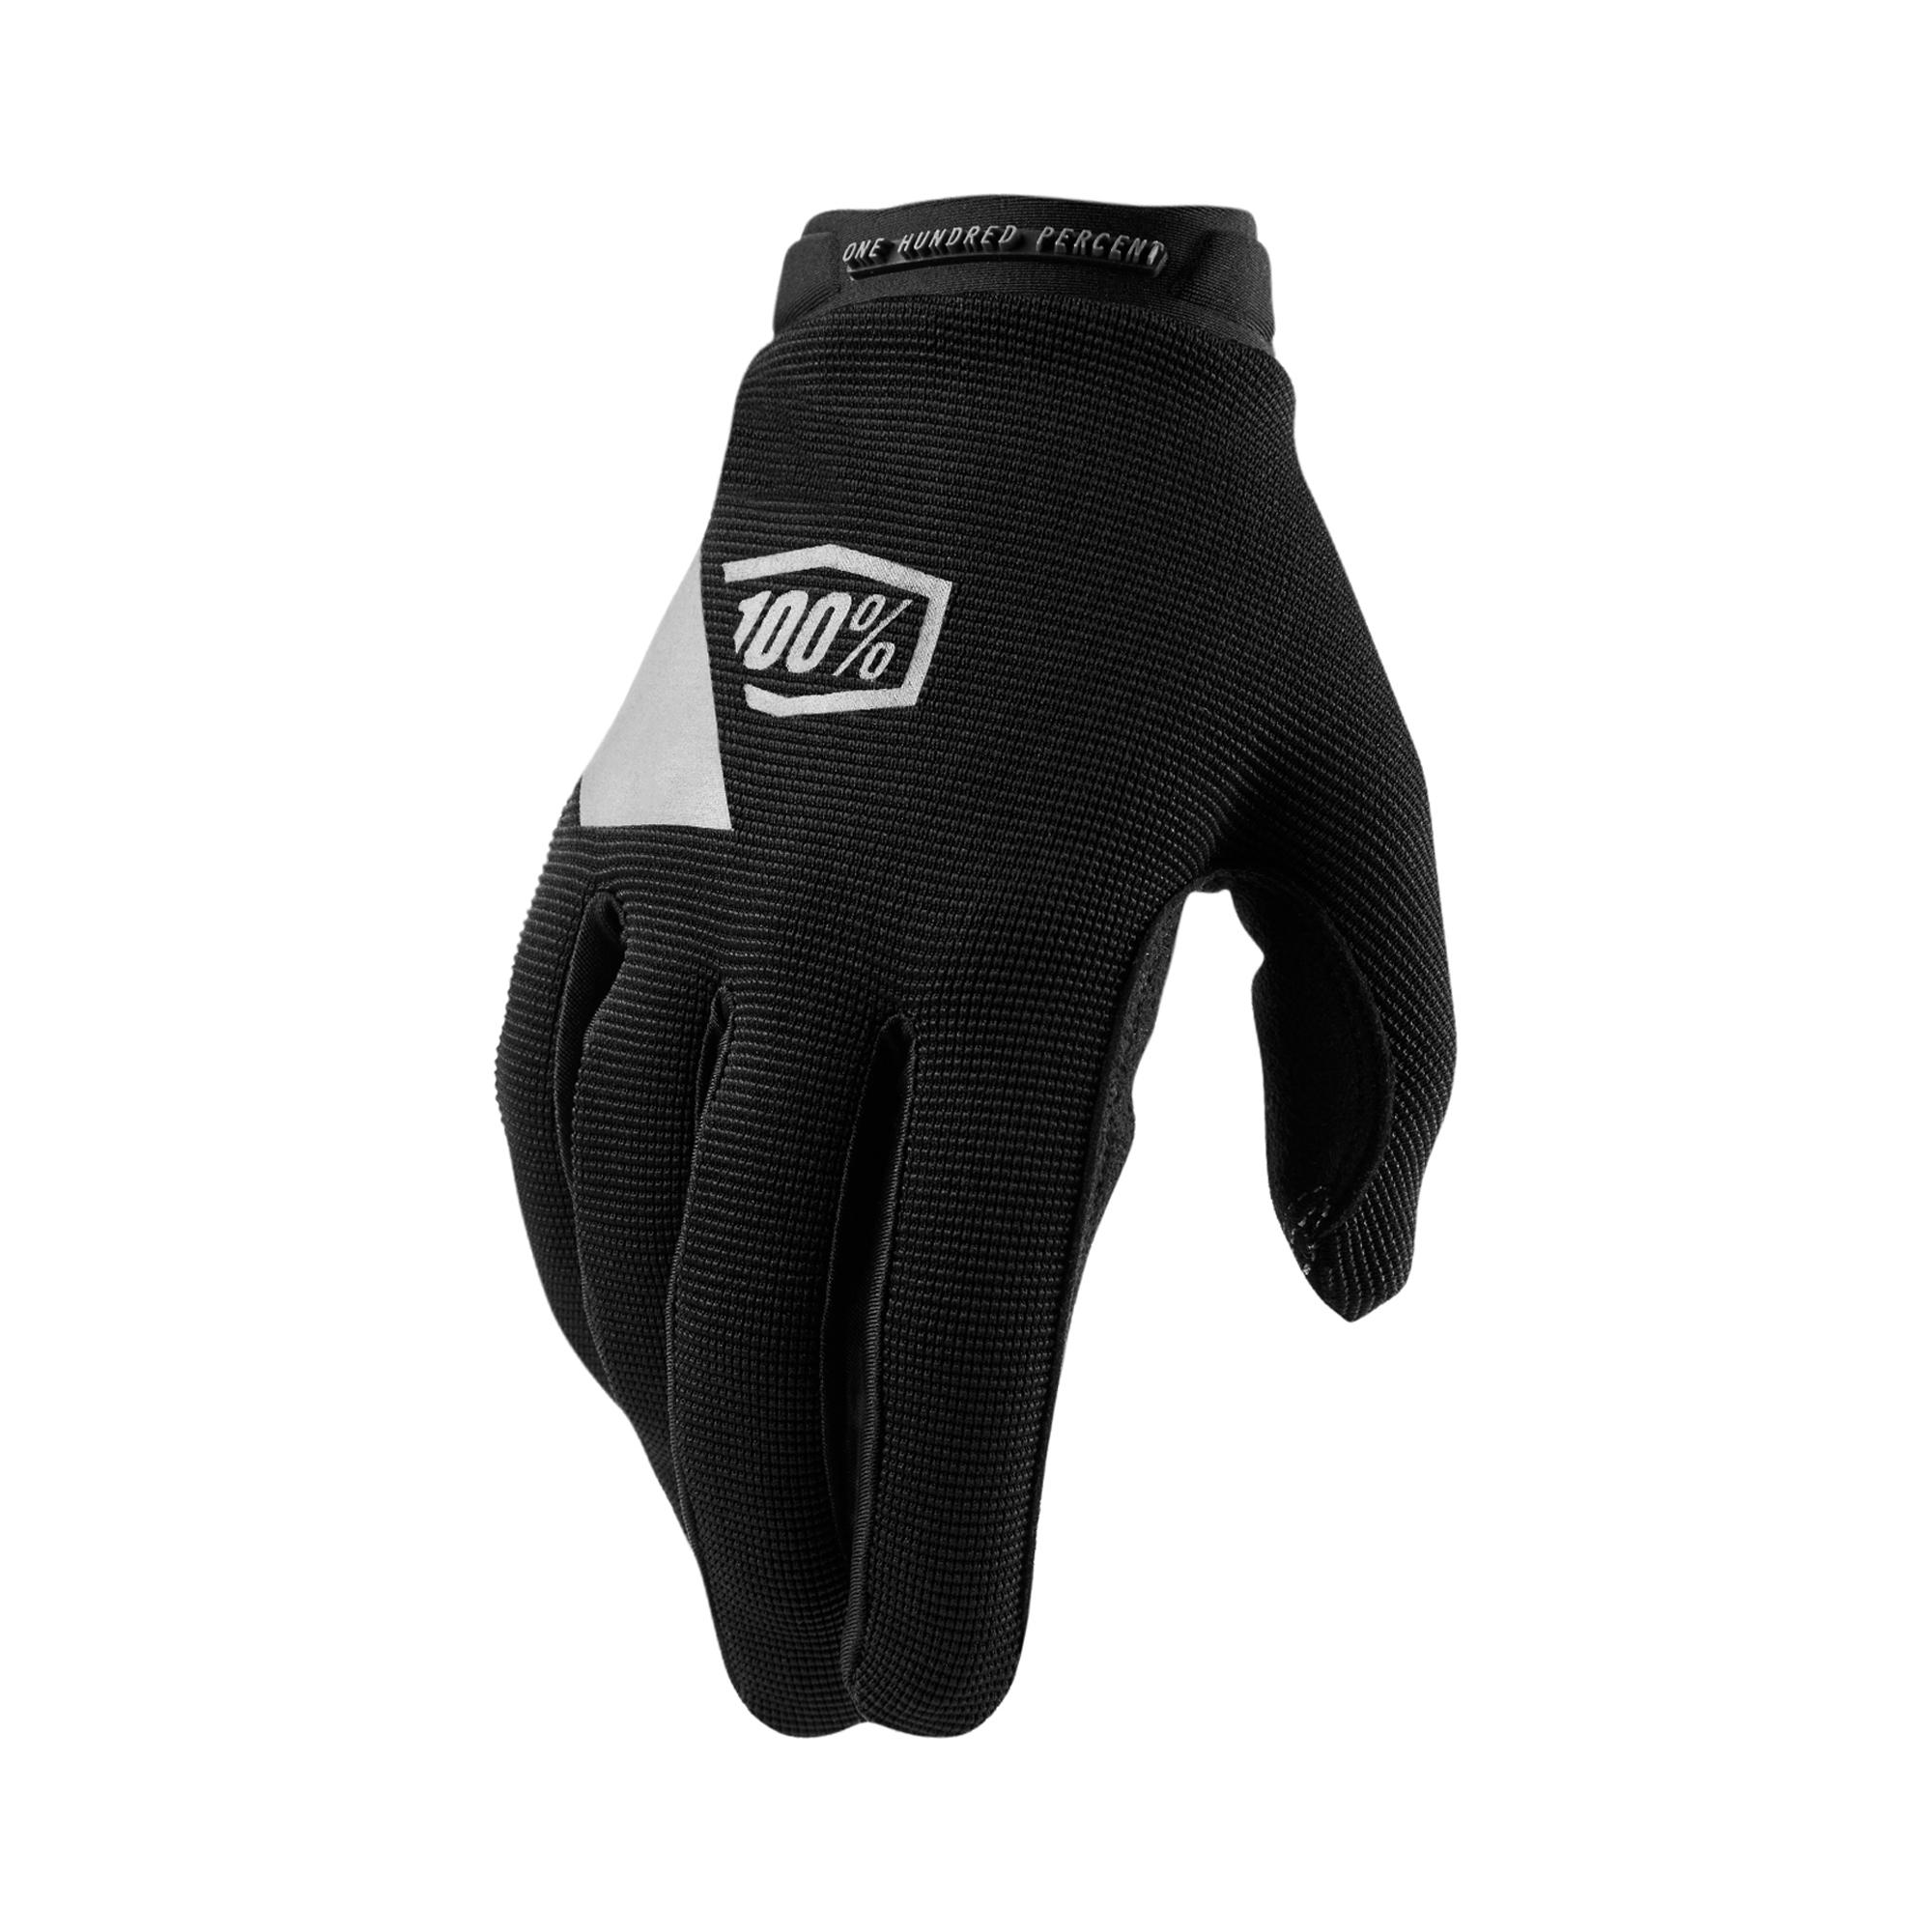 RIDECAMP Womens Glove Black -